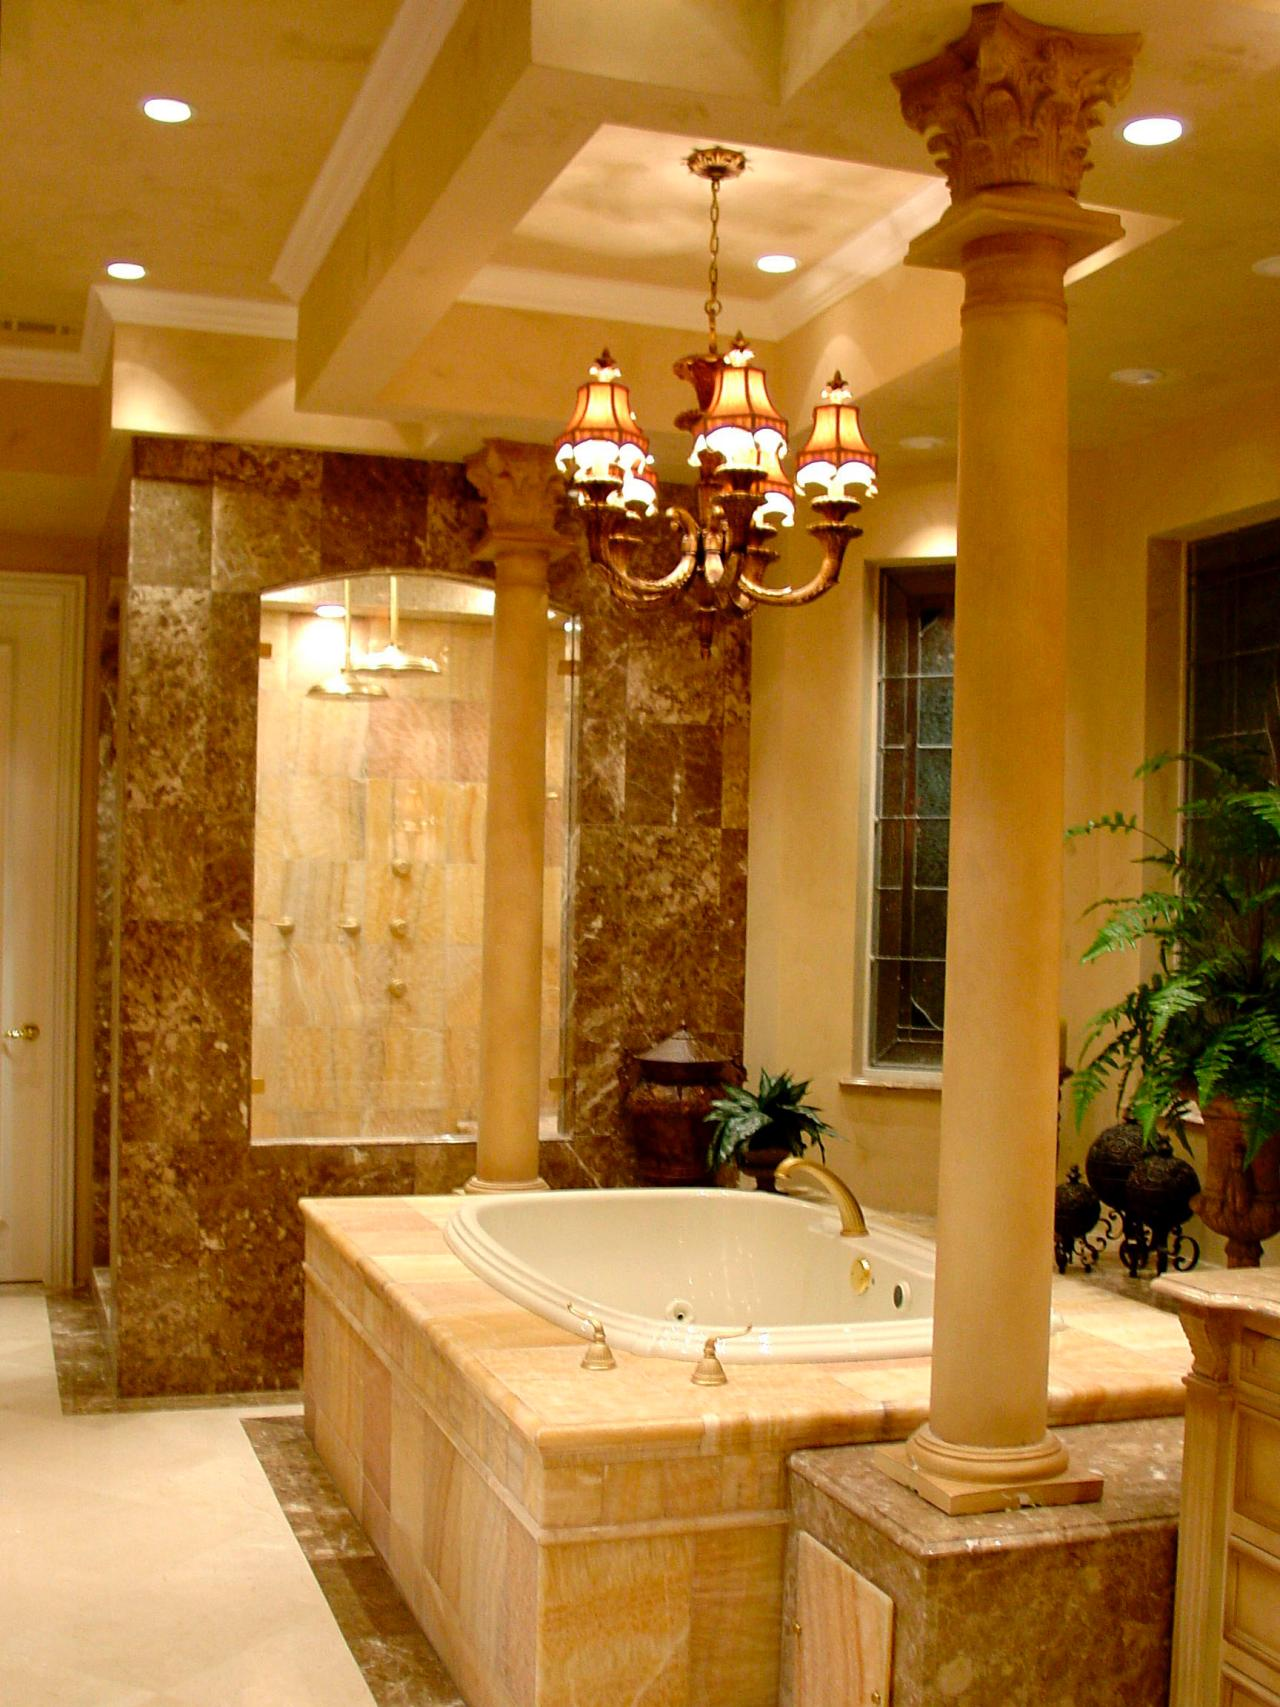 Starting a bathroom remodel hgtv for Bathroom designs egypt